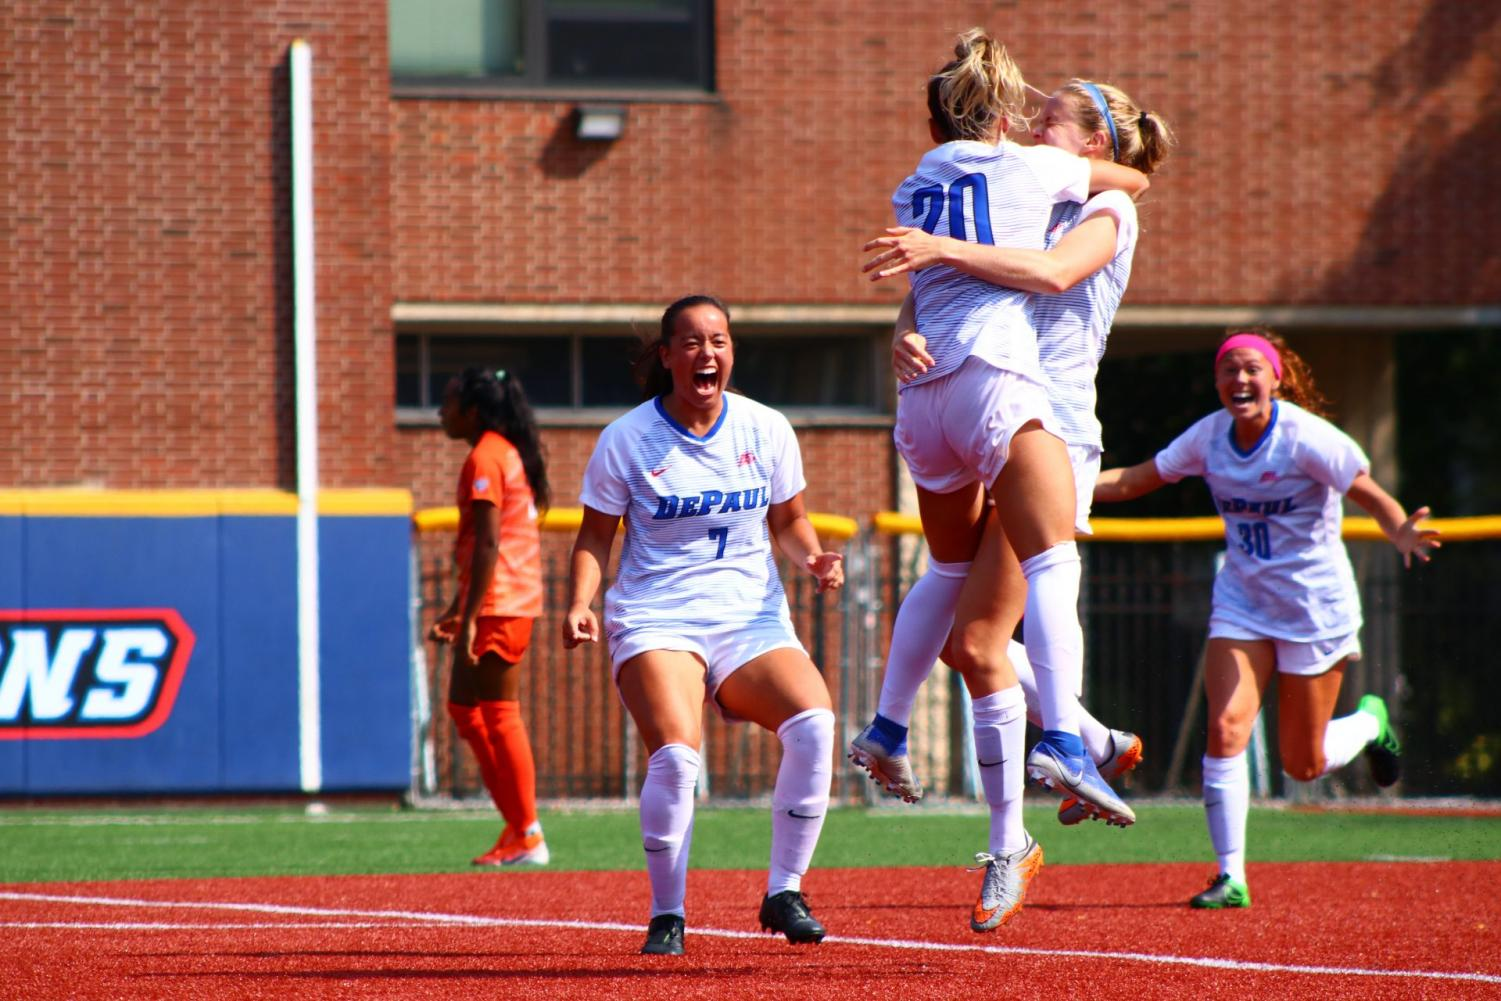 The DePaul Women's soccer team celebrate a goal by junior forward Megan Turner against Bowling Green on Sunday at Wish Field.